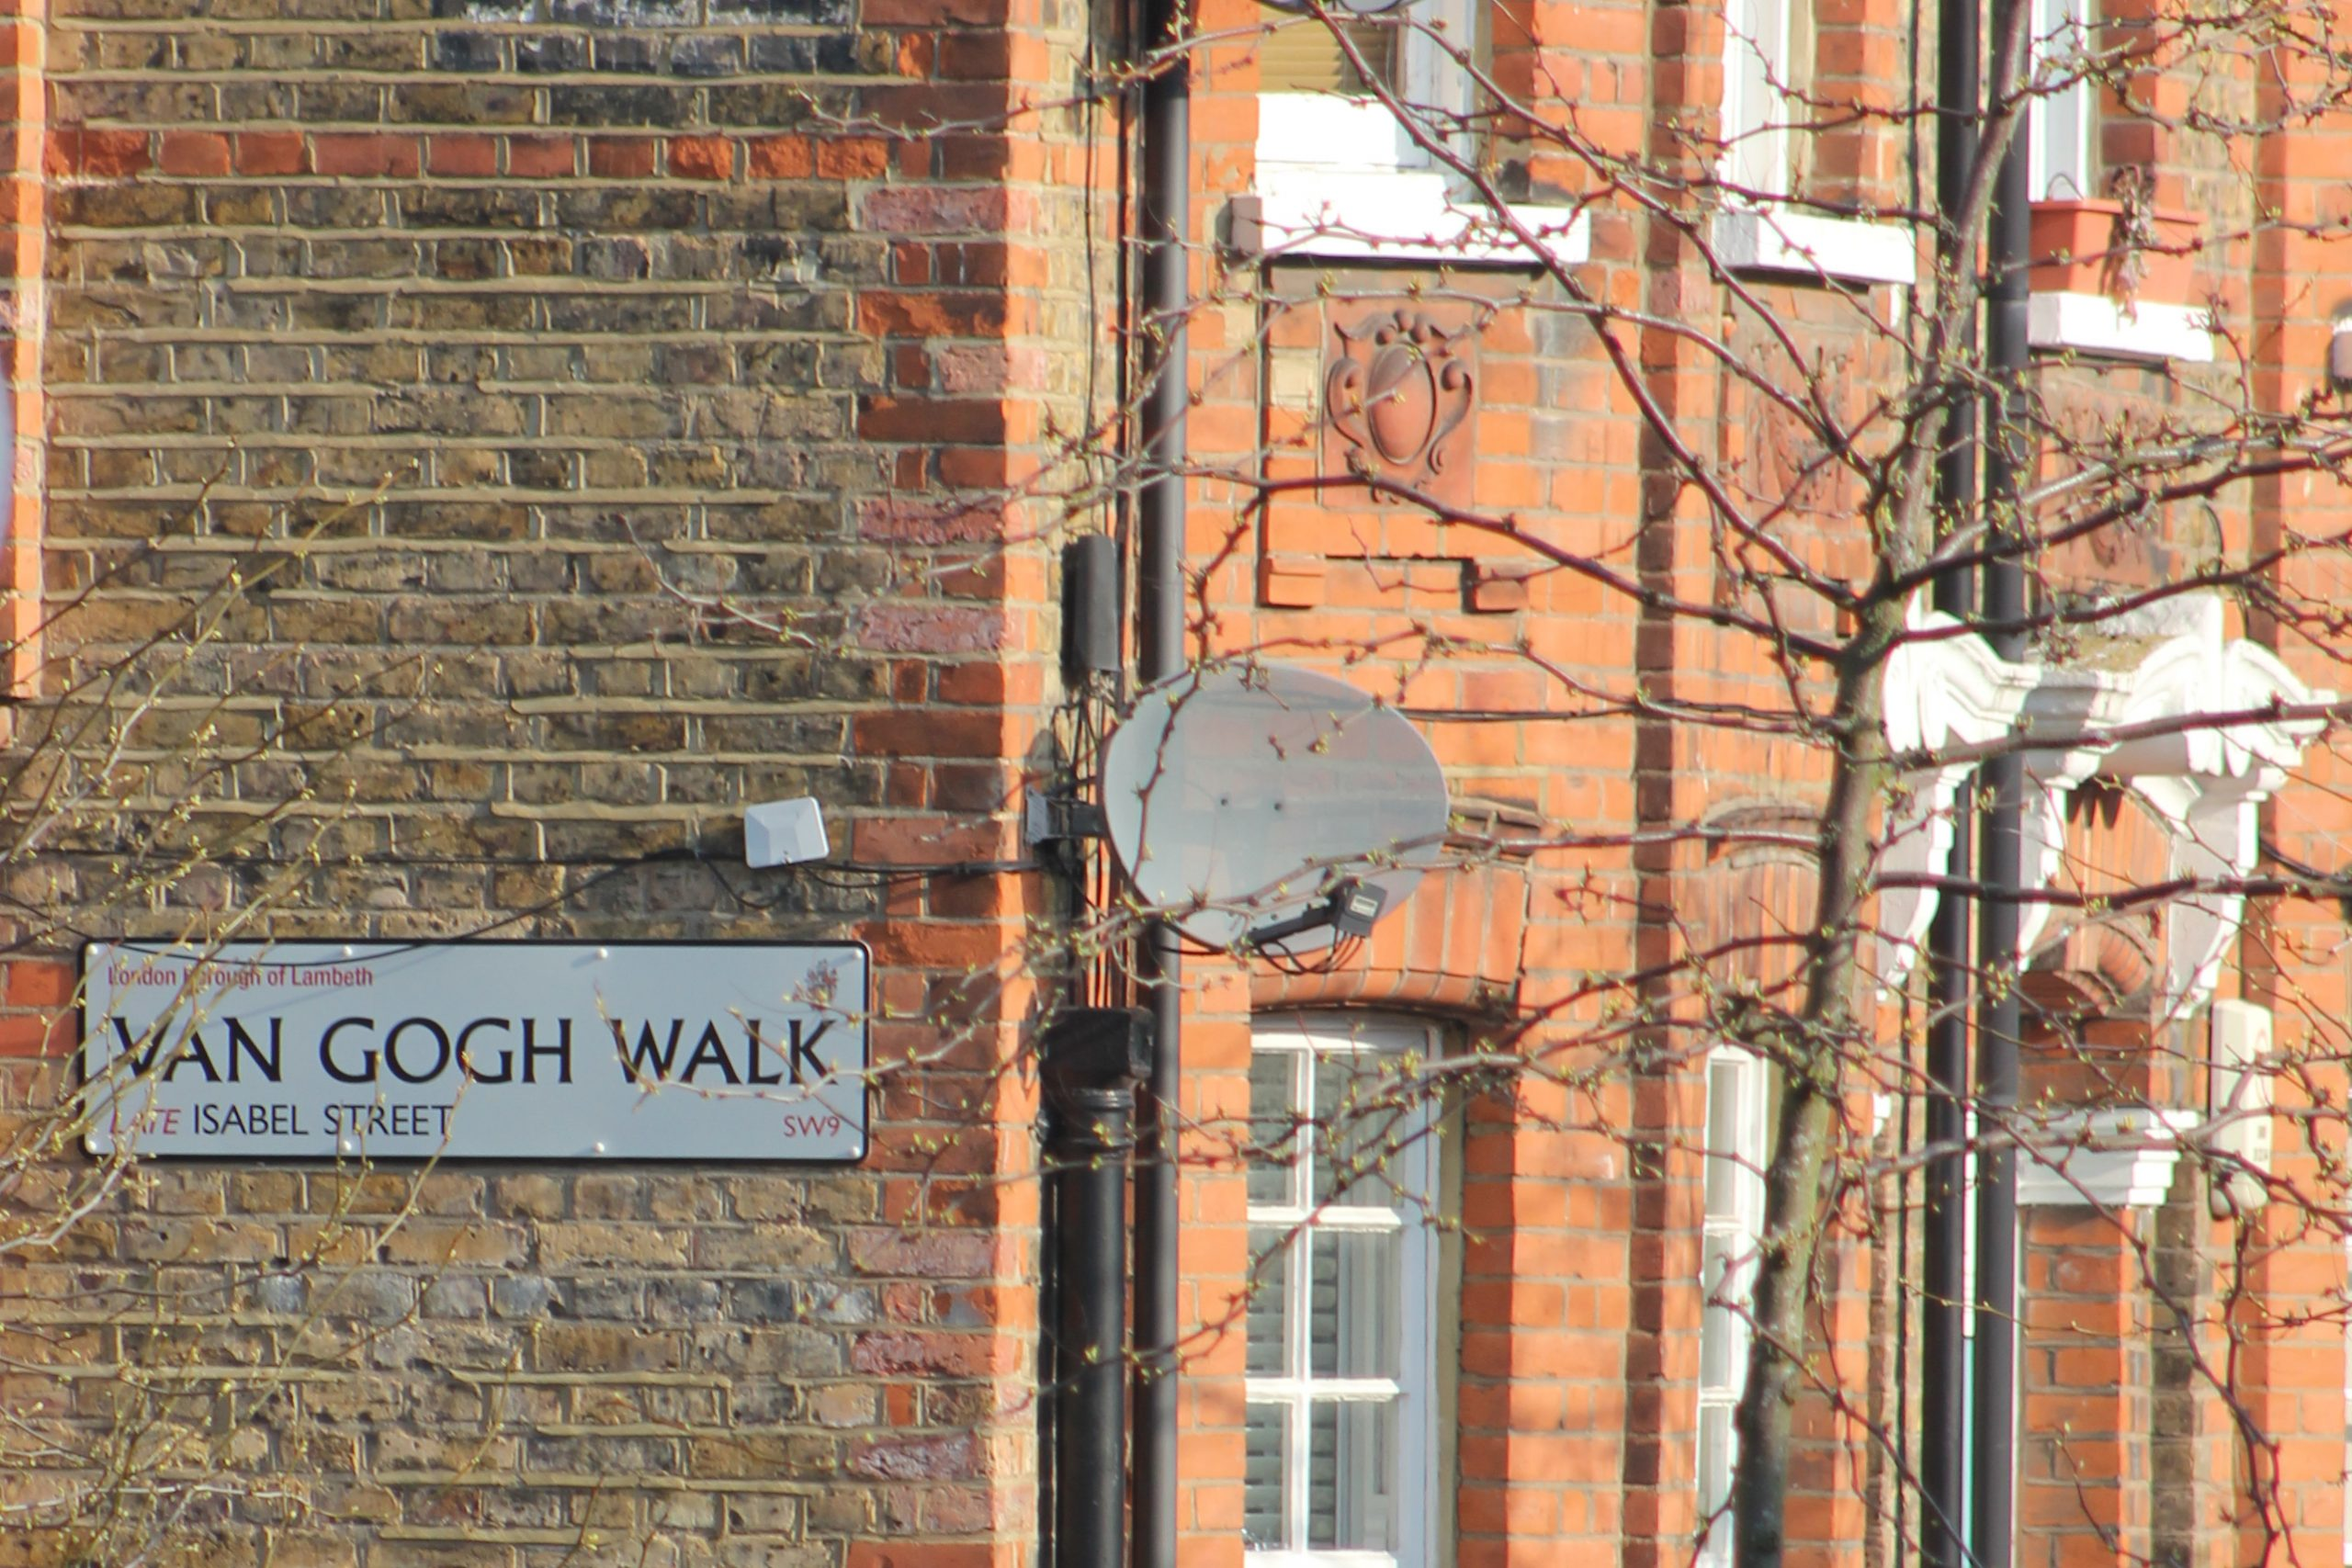 A street sign reads 'Van Gogh Walk' on a brick wall.